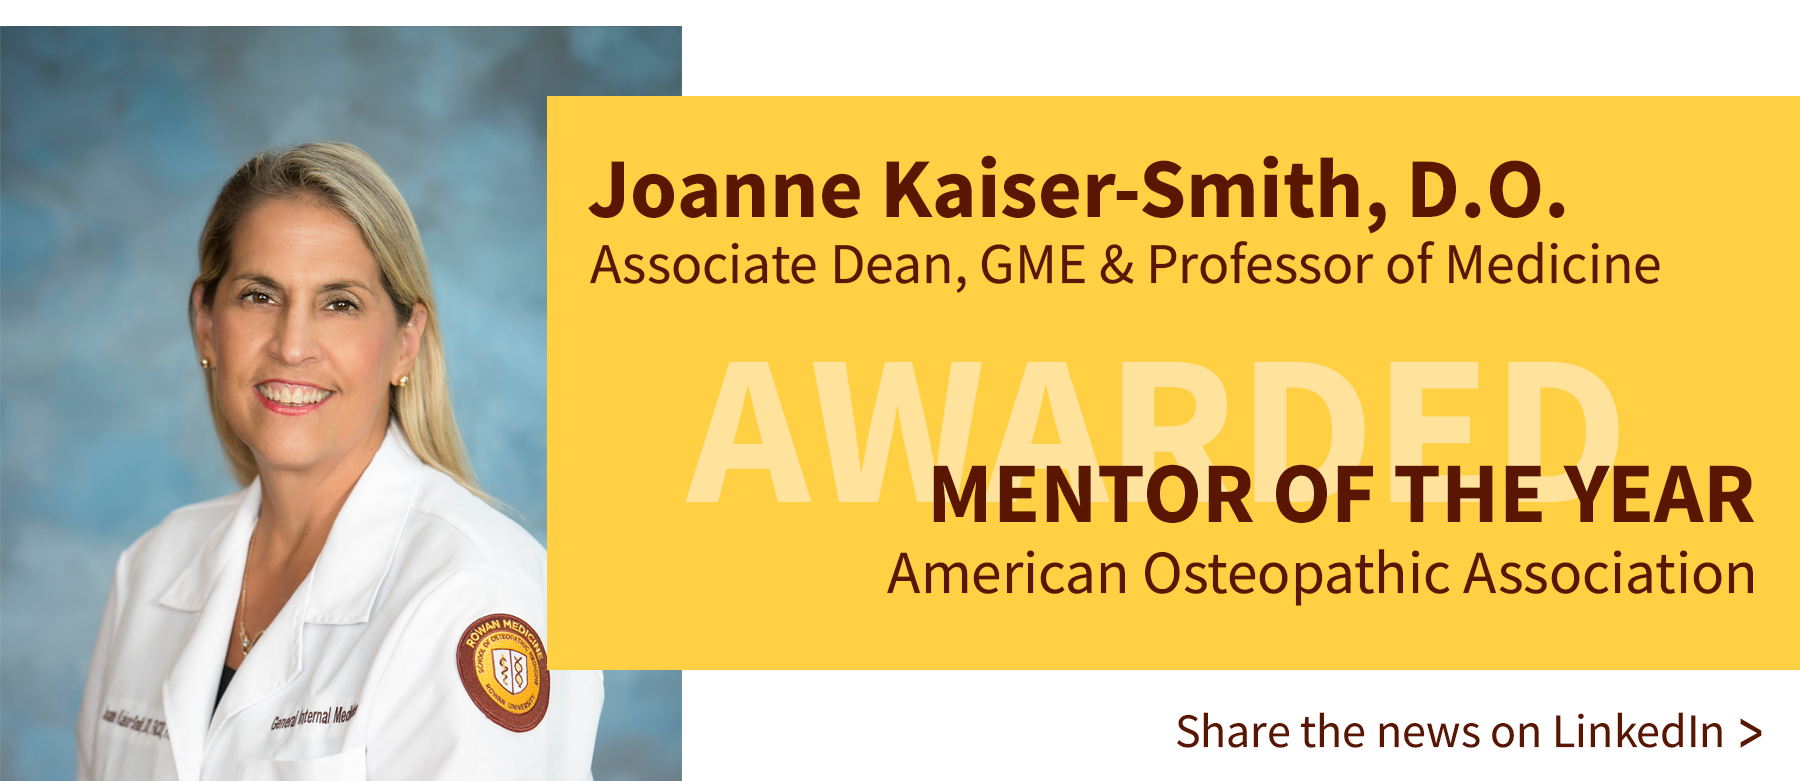 Joanne Kaiser-Smith is awarded AOA Mentor of the Year